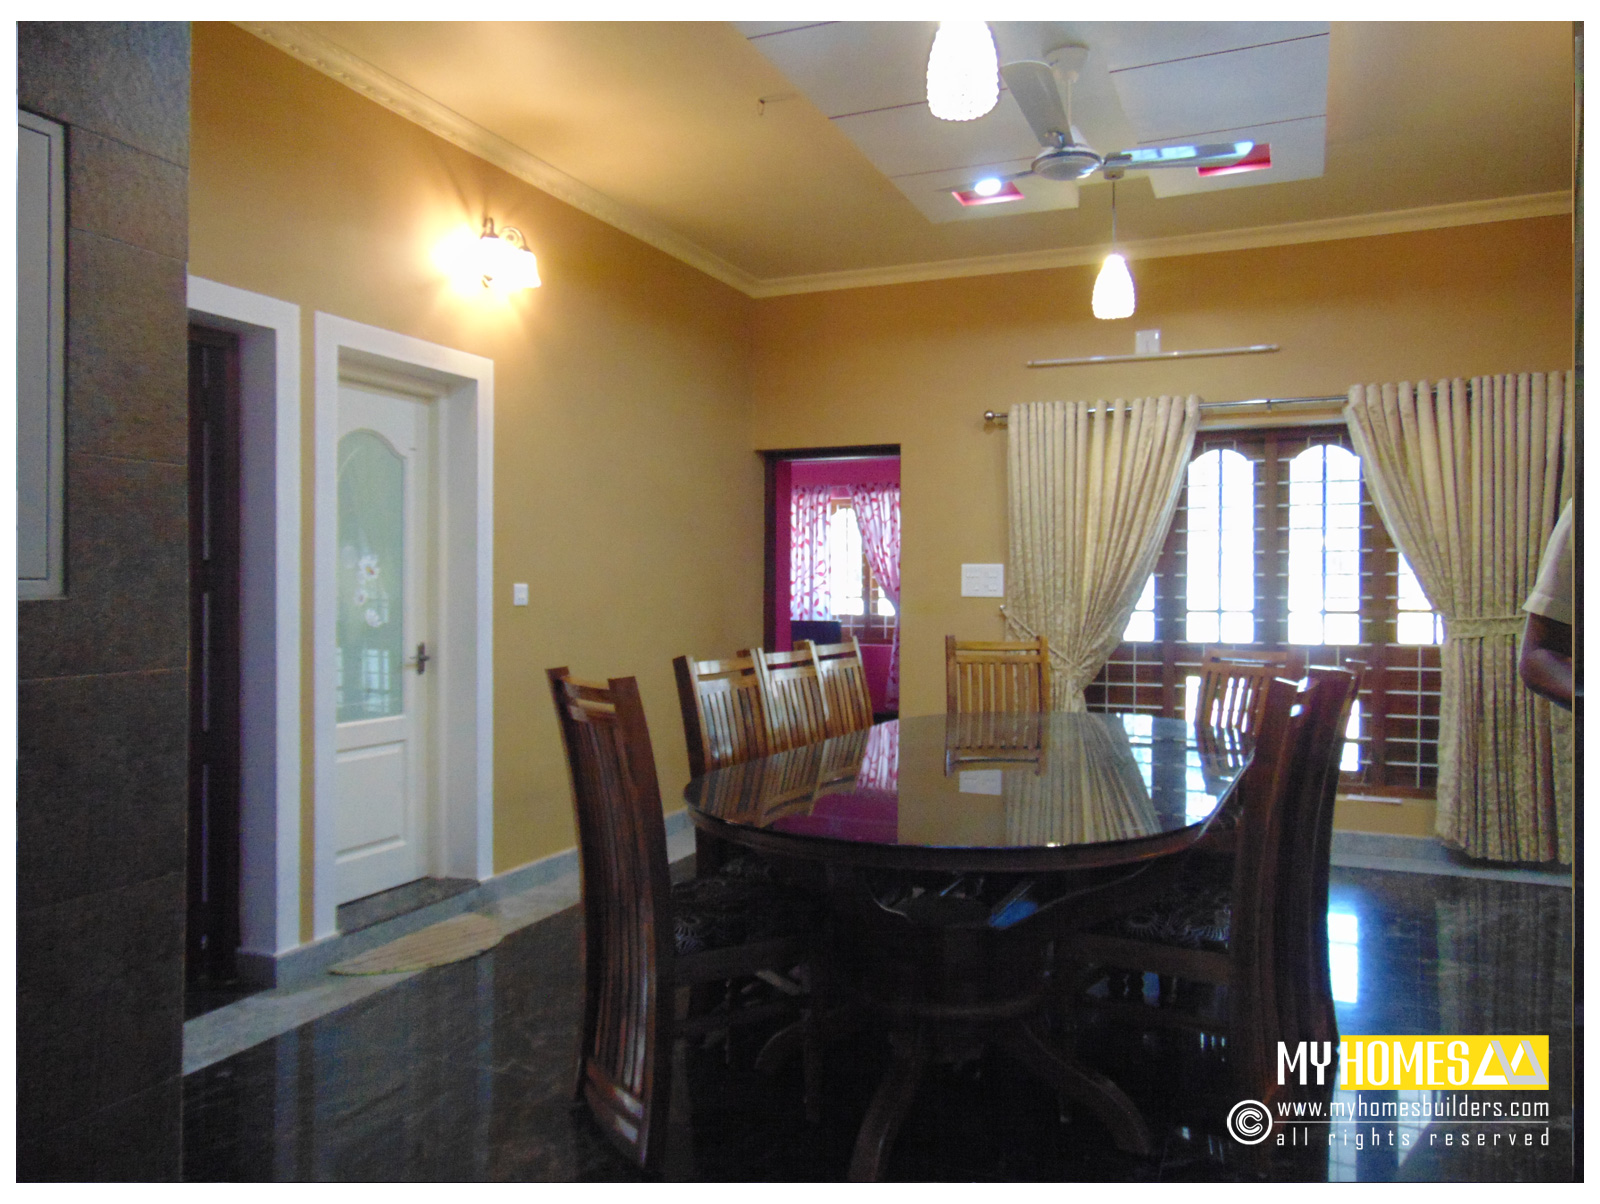 keral house dining room tables, dining room table design in Kerala, Kerala houses ding table designs